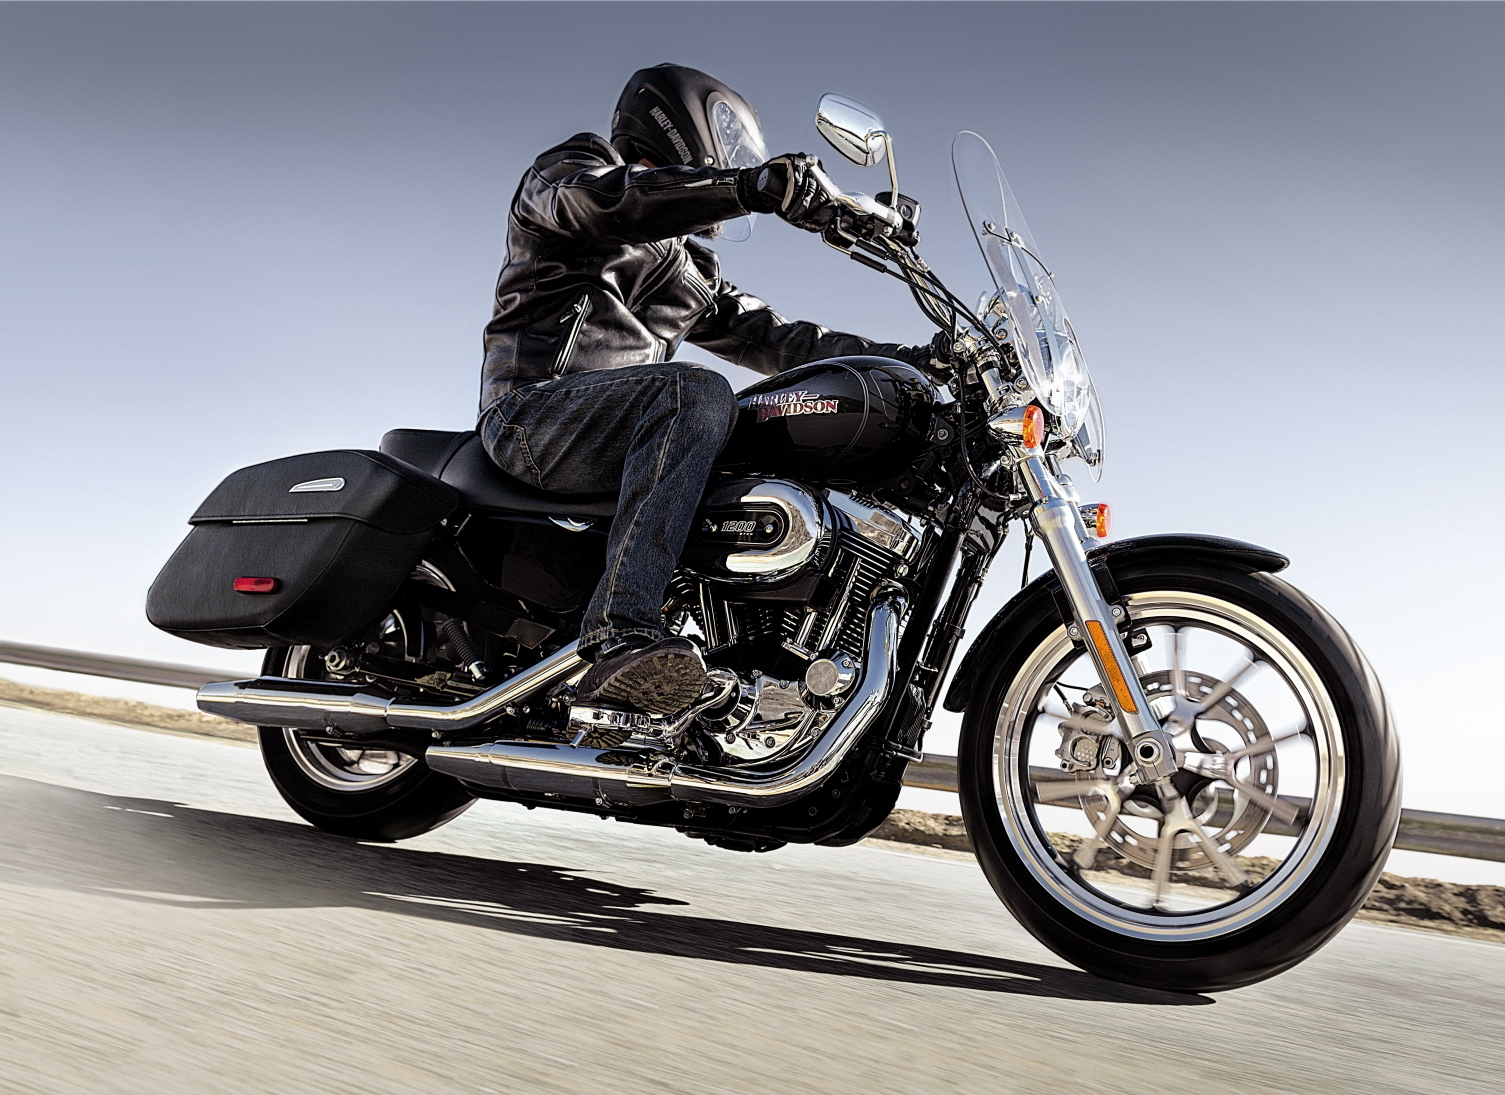 HARLEY-DAVIDSON Busts out Two more Bikes